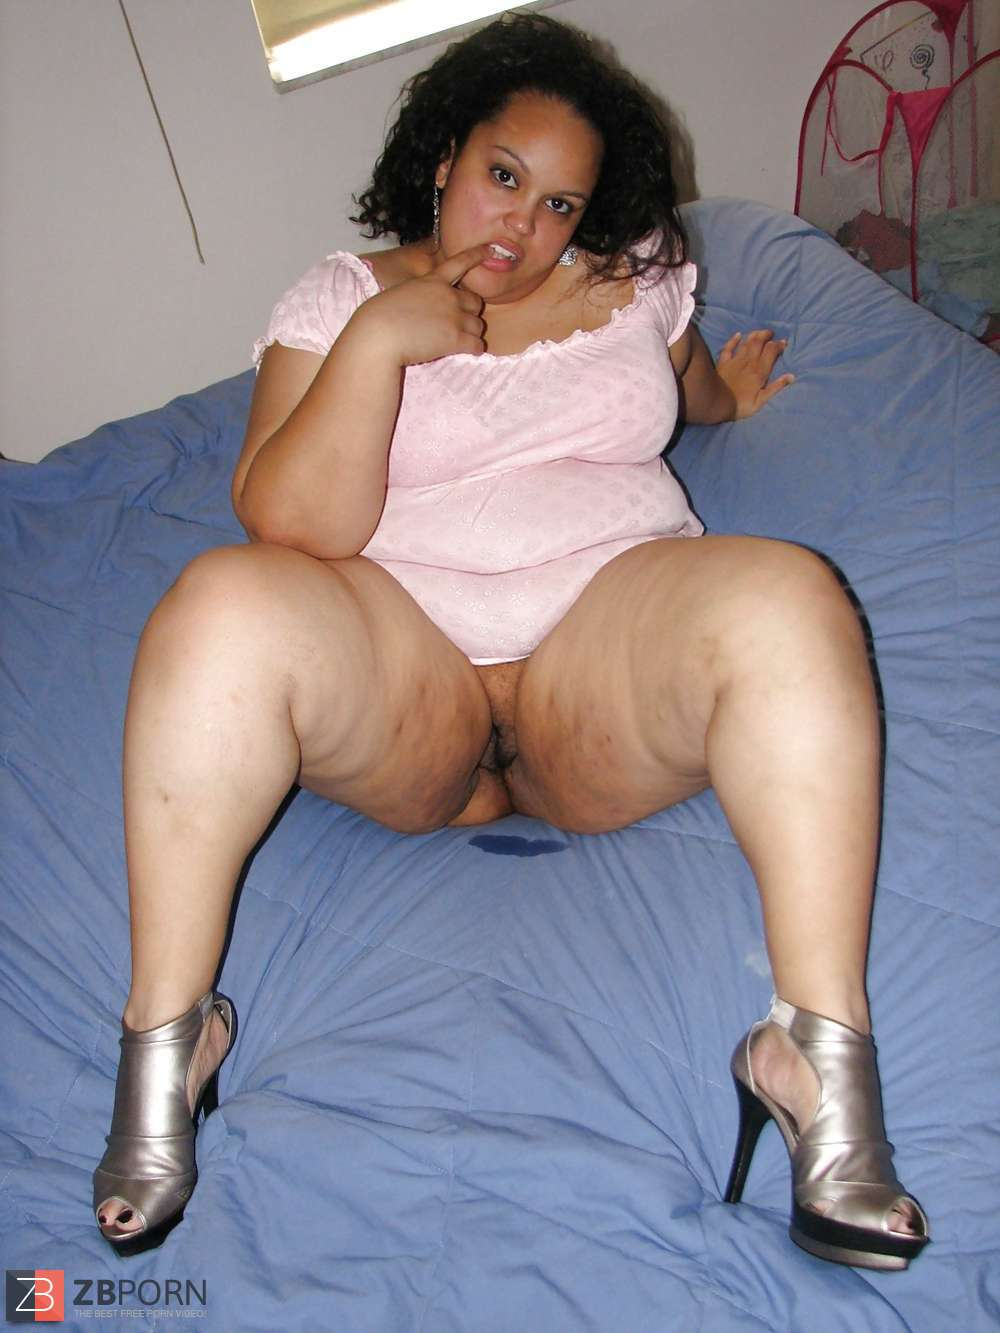 Free nude pics of thick chicks